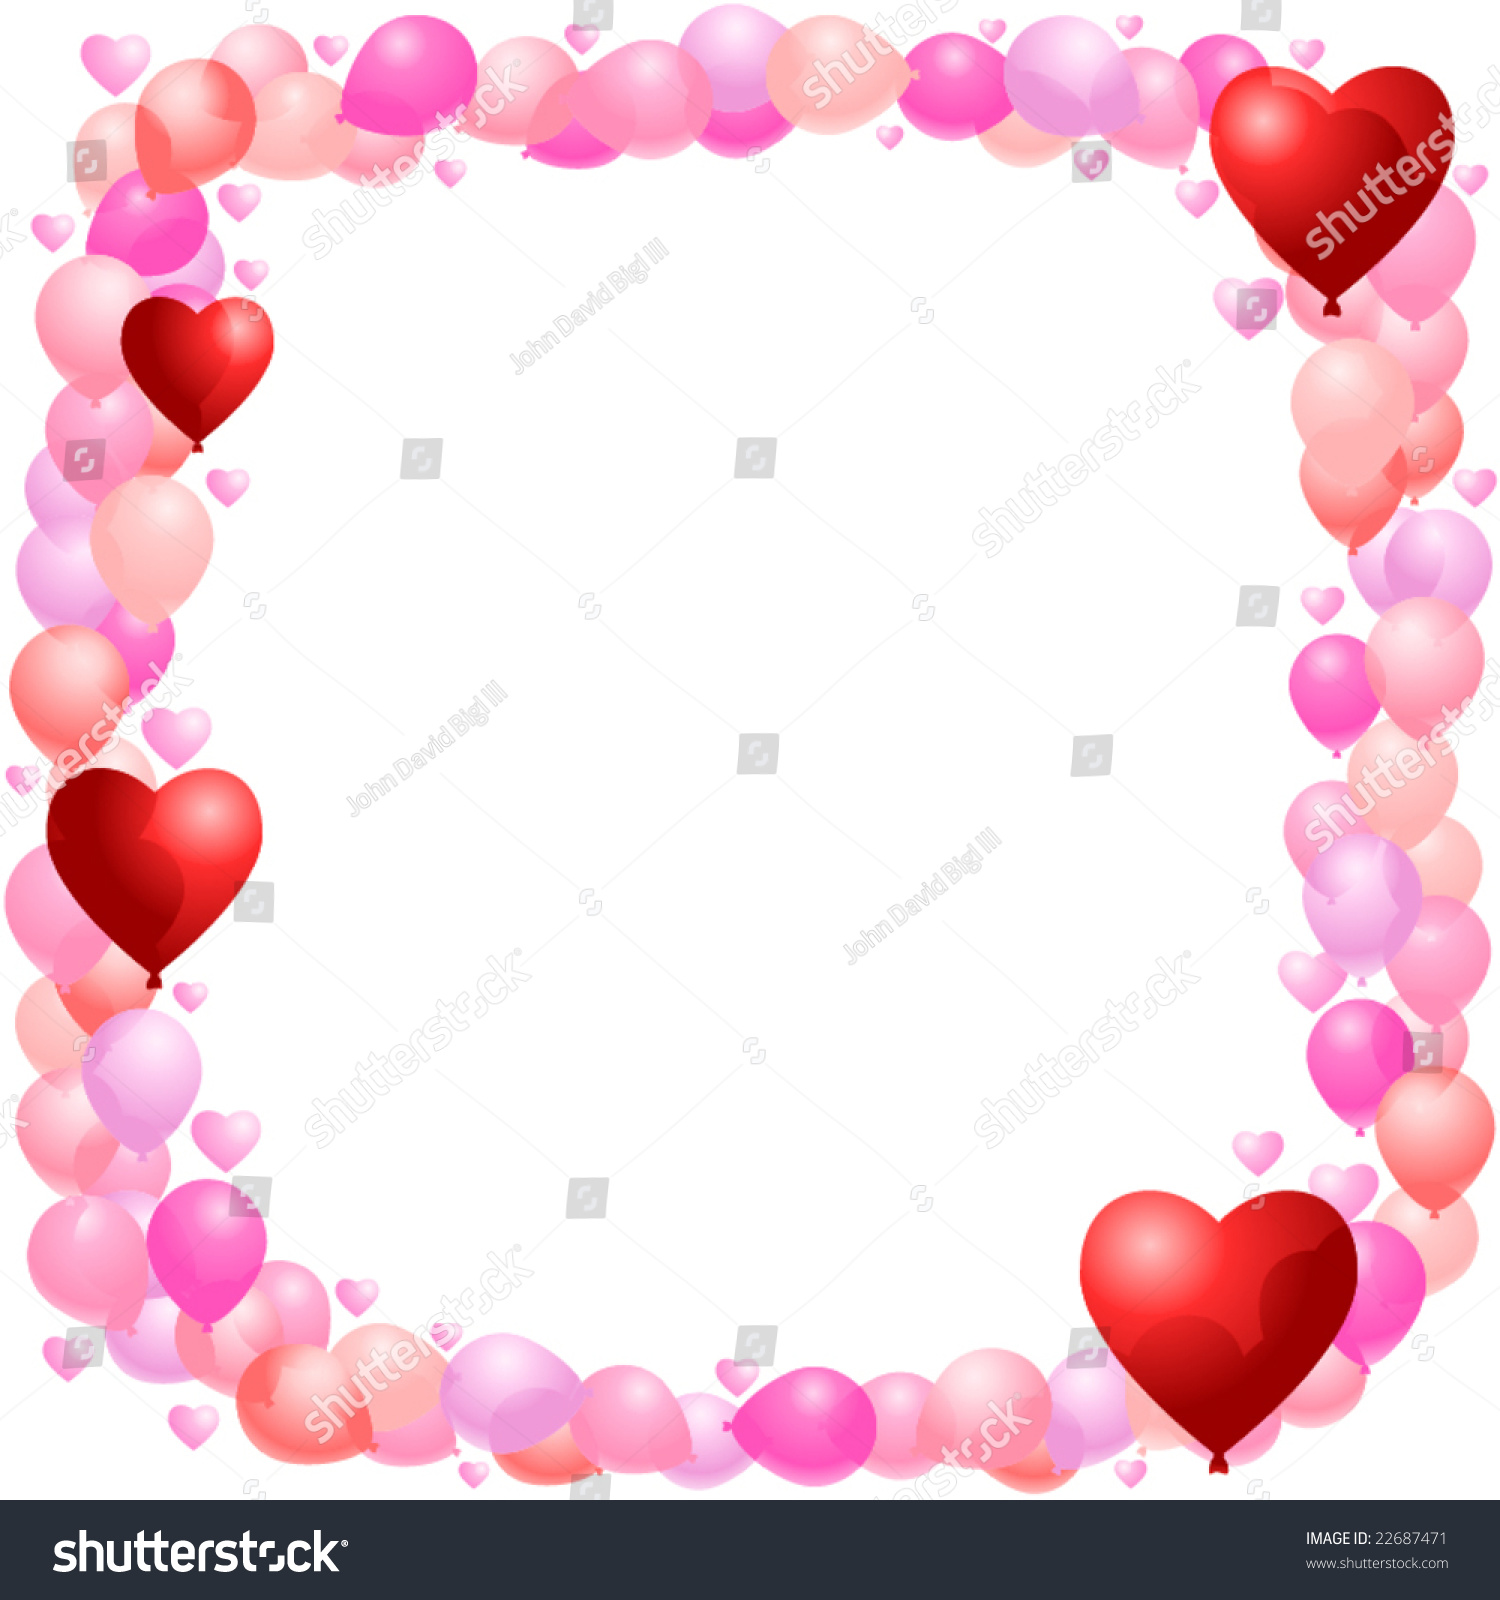 vector balloon frame hearts implied transparency のベクター画像素材